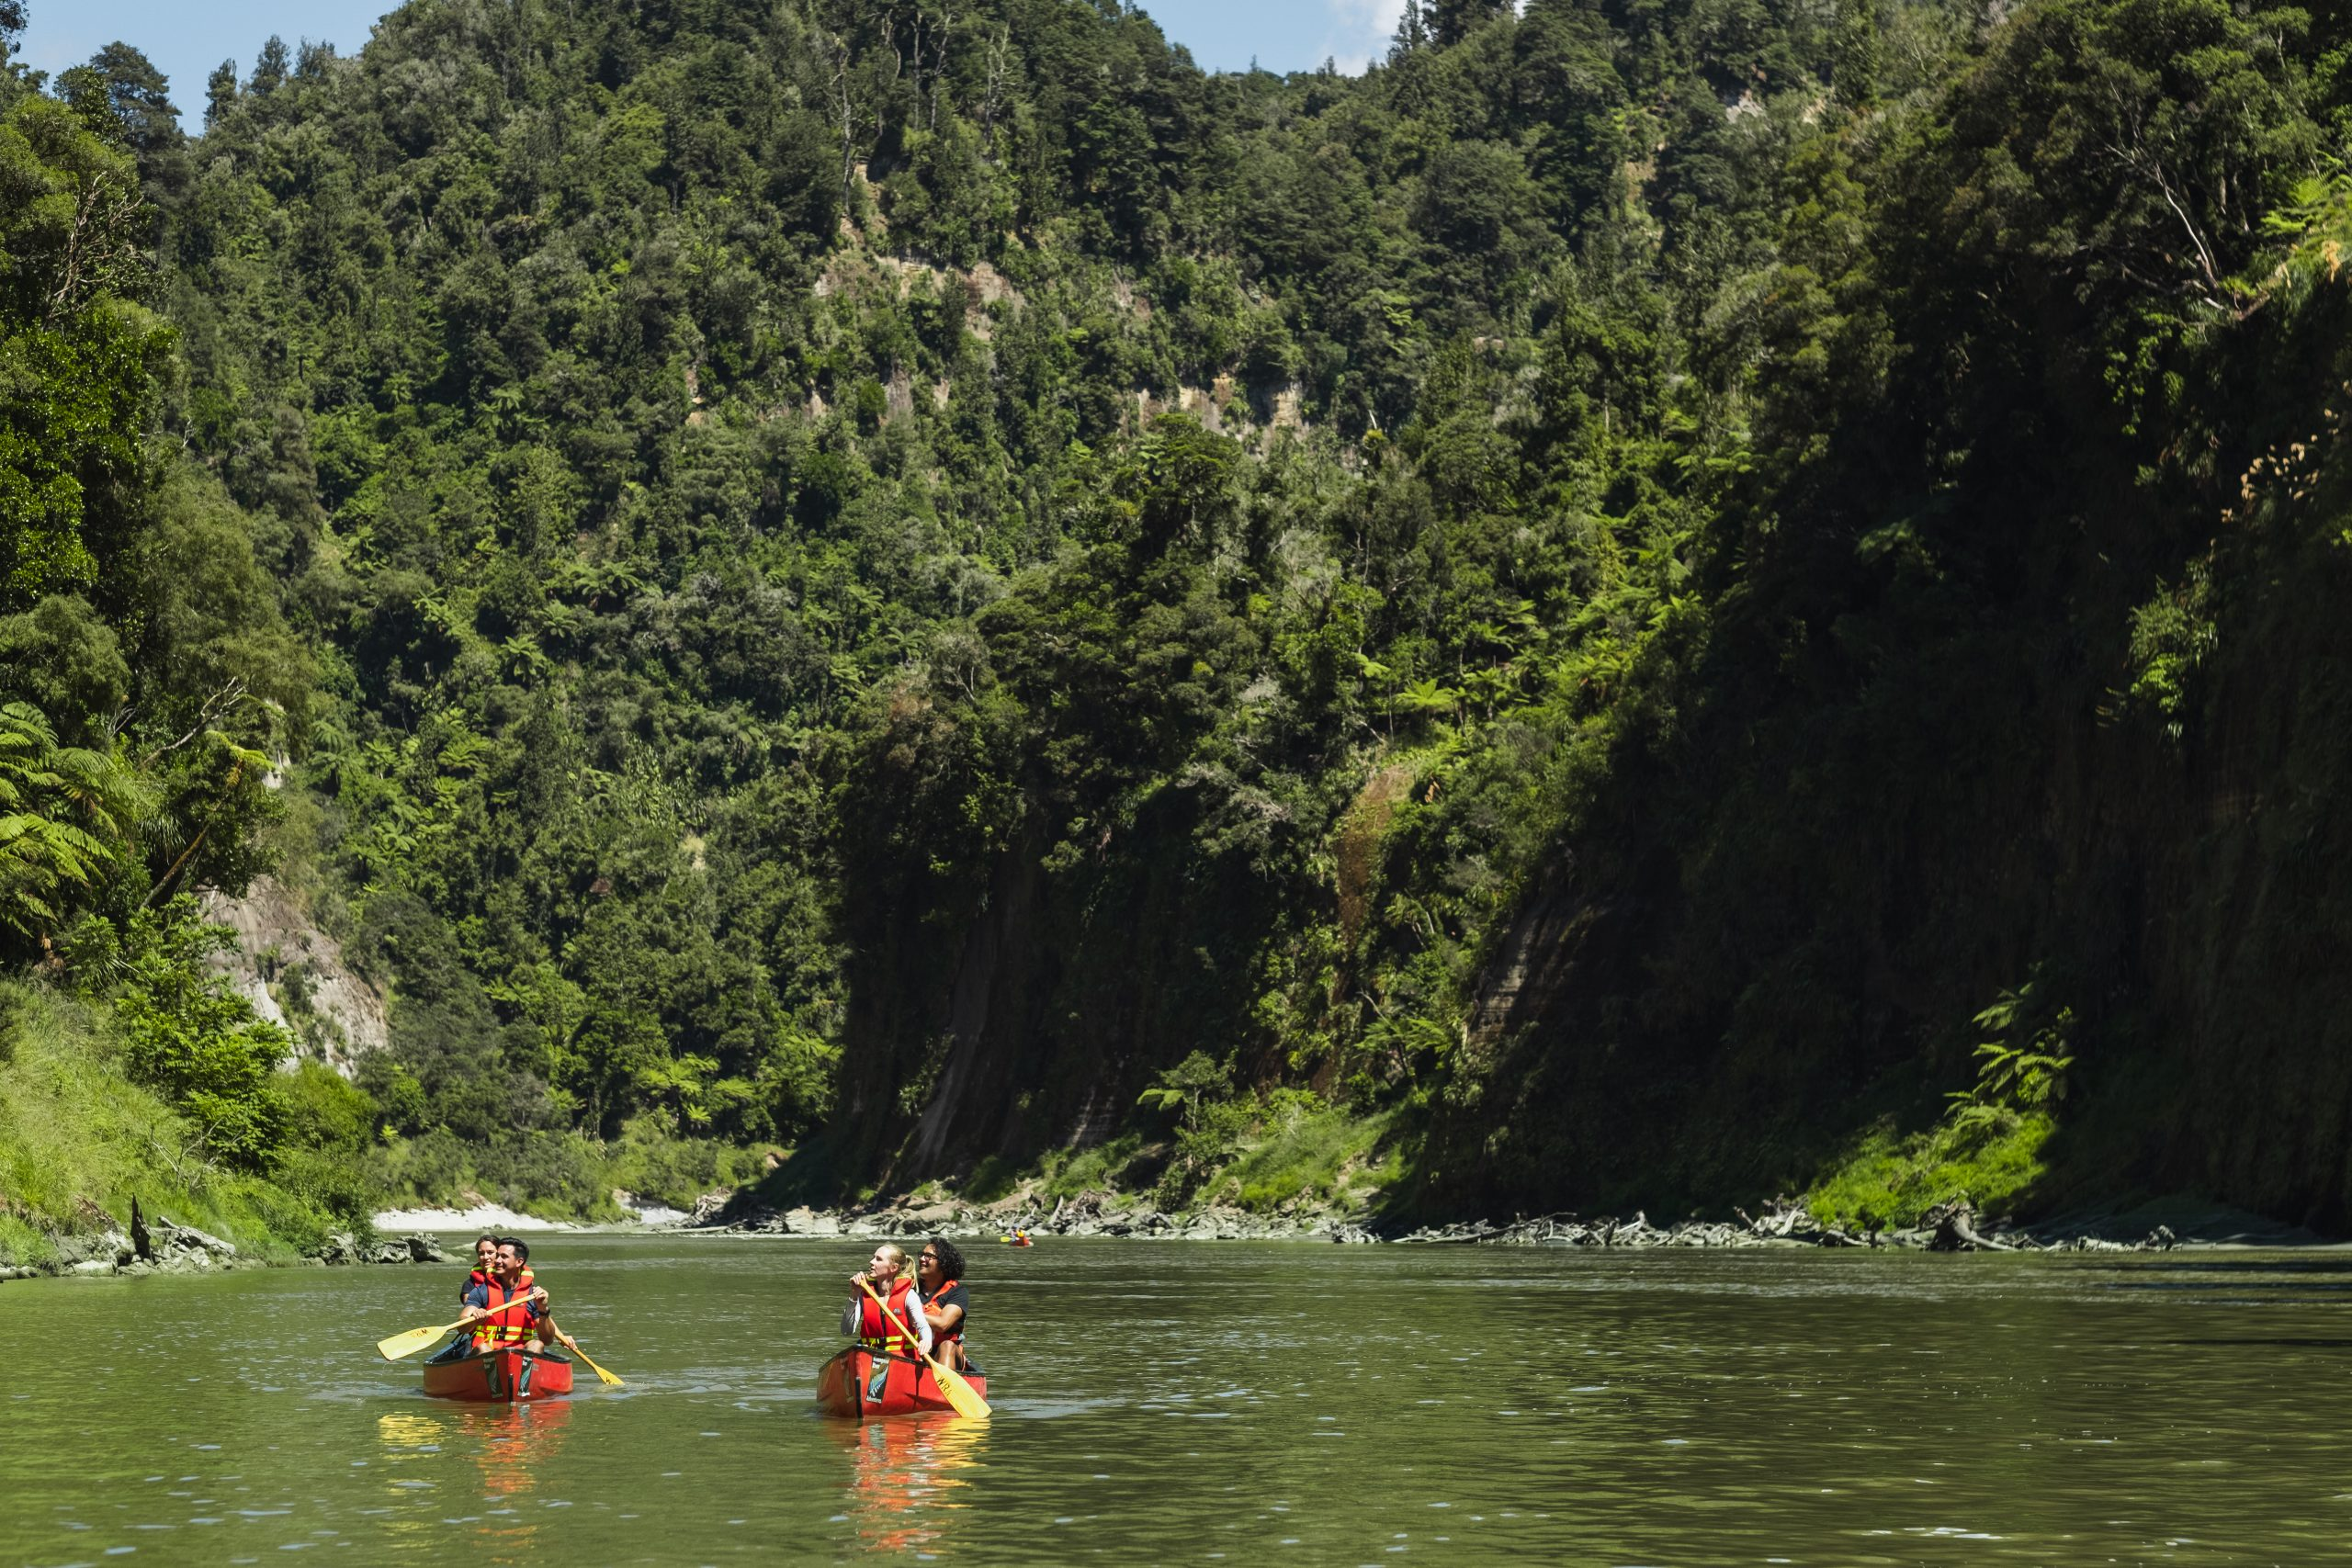 People in two canoes paddling down the Whanganui River